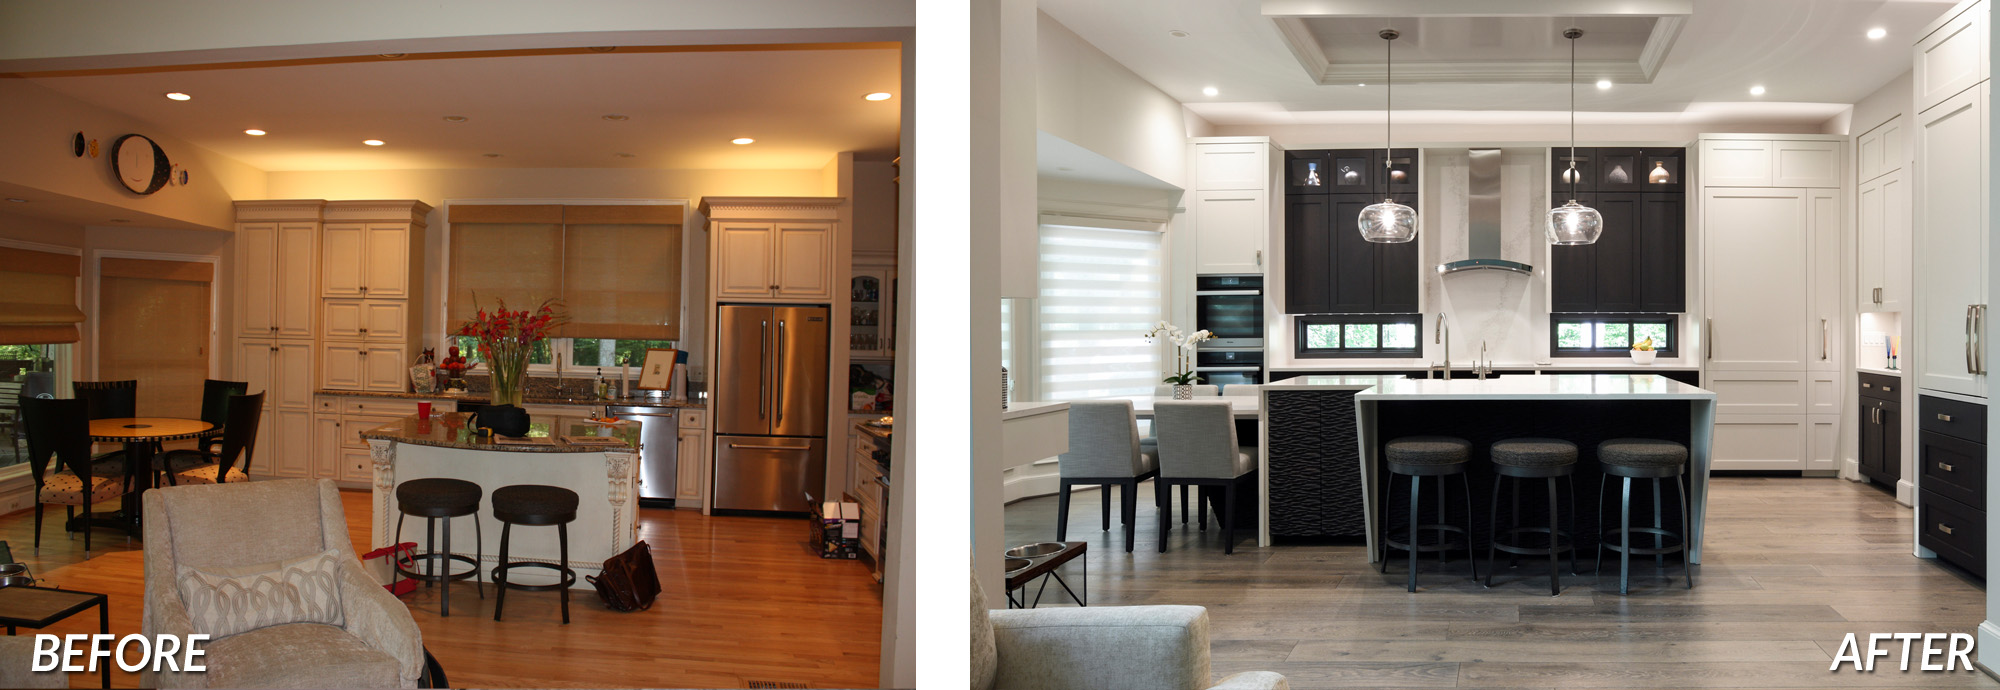 BOWA Design Design Build - McLean Contemporary Main Level Renovation Before & After